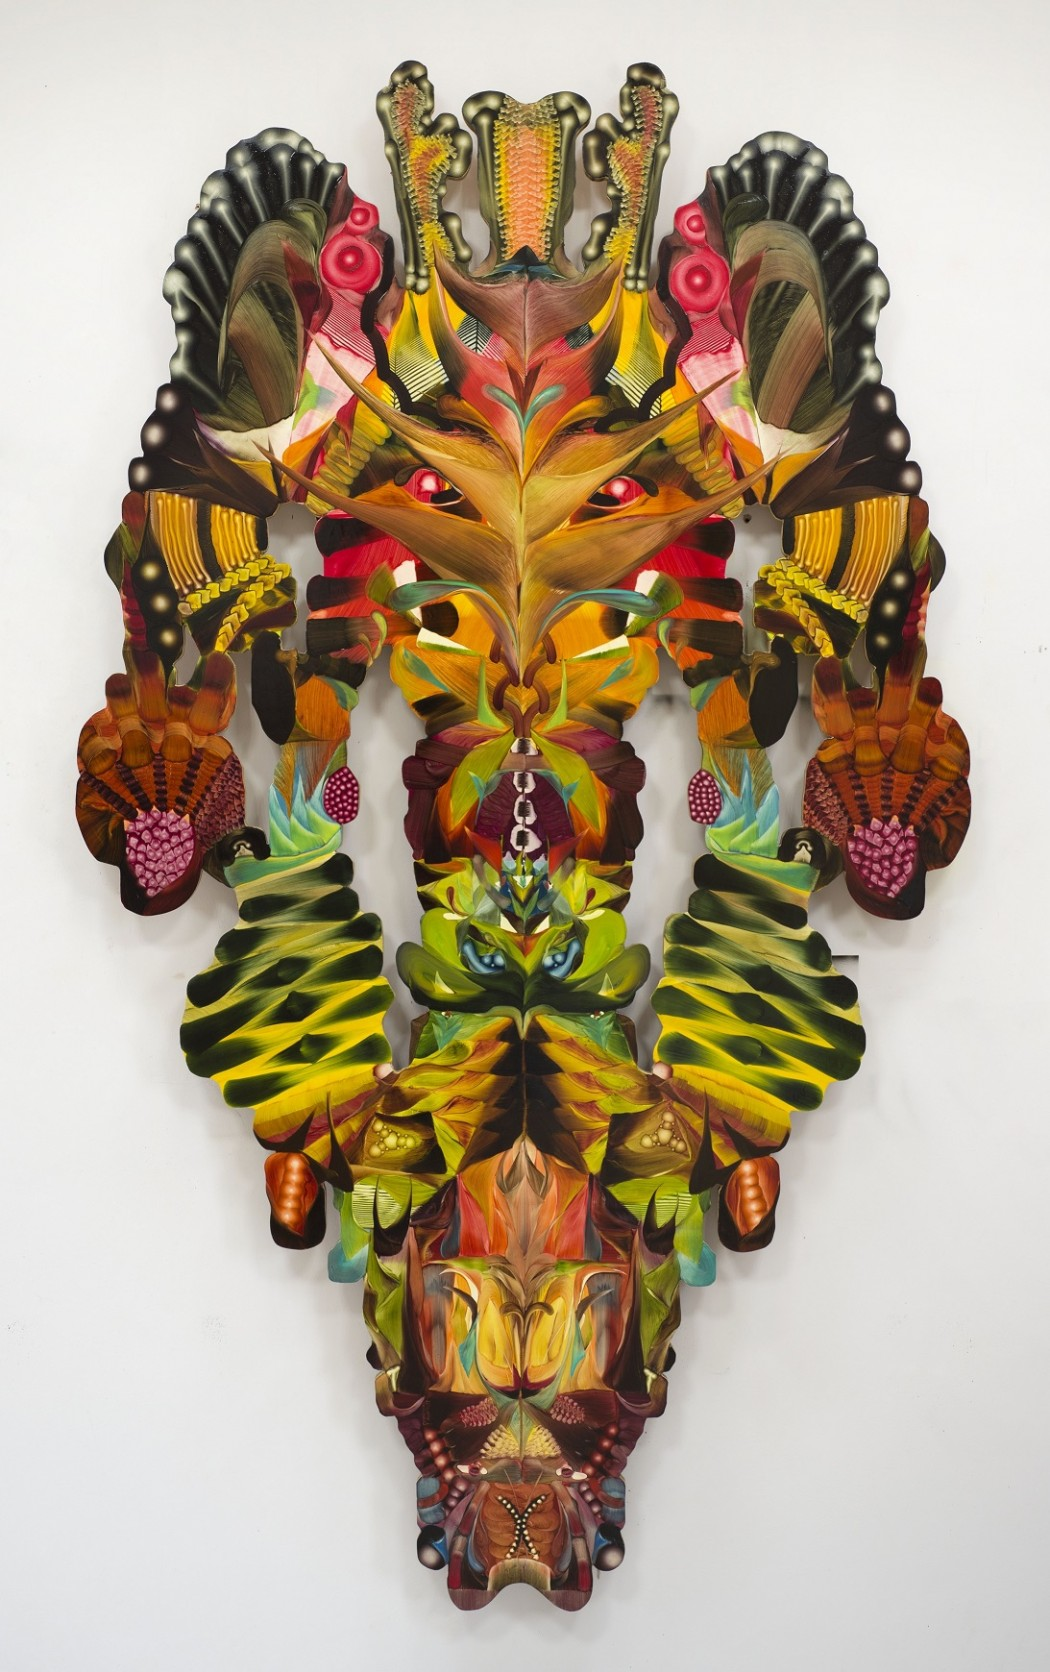 Andy Harper, The Threefold Law 2012. Oil paint on plywood. 208 x 120 x 3 cm, courtesy of Pump House Gallery